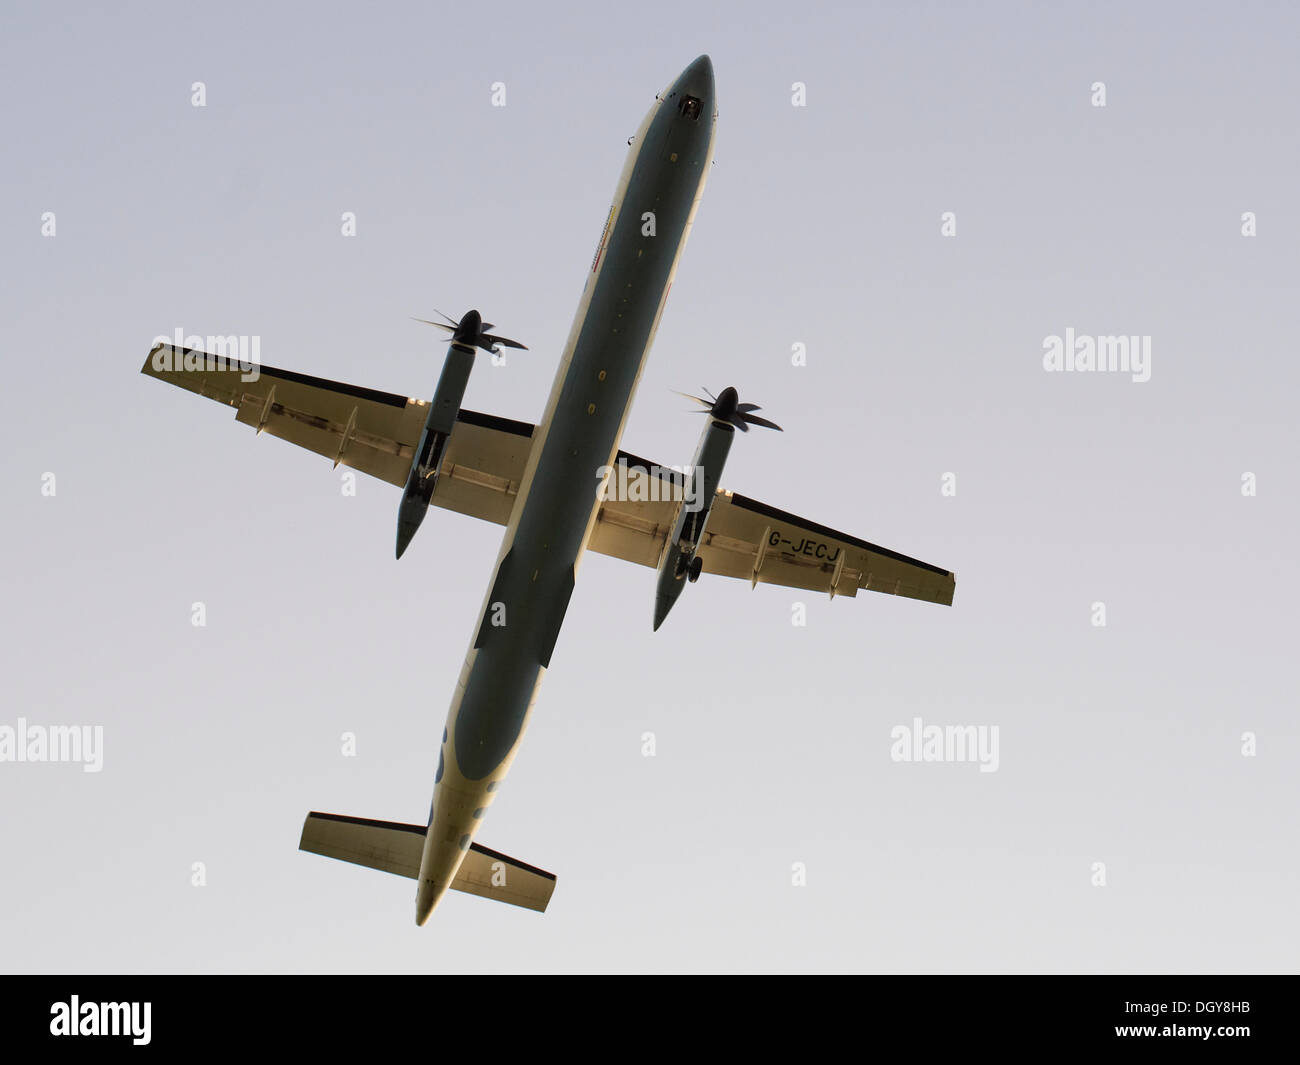 Twin engine turboprop aircraft of British European airline viewed from below on landing approach, Frankfurt Airport - Stock Image